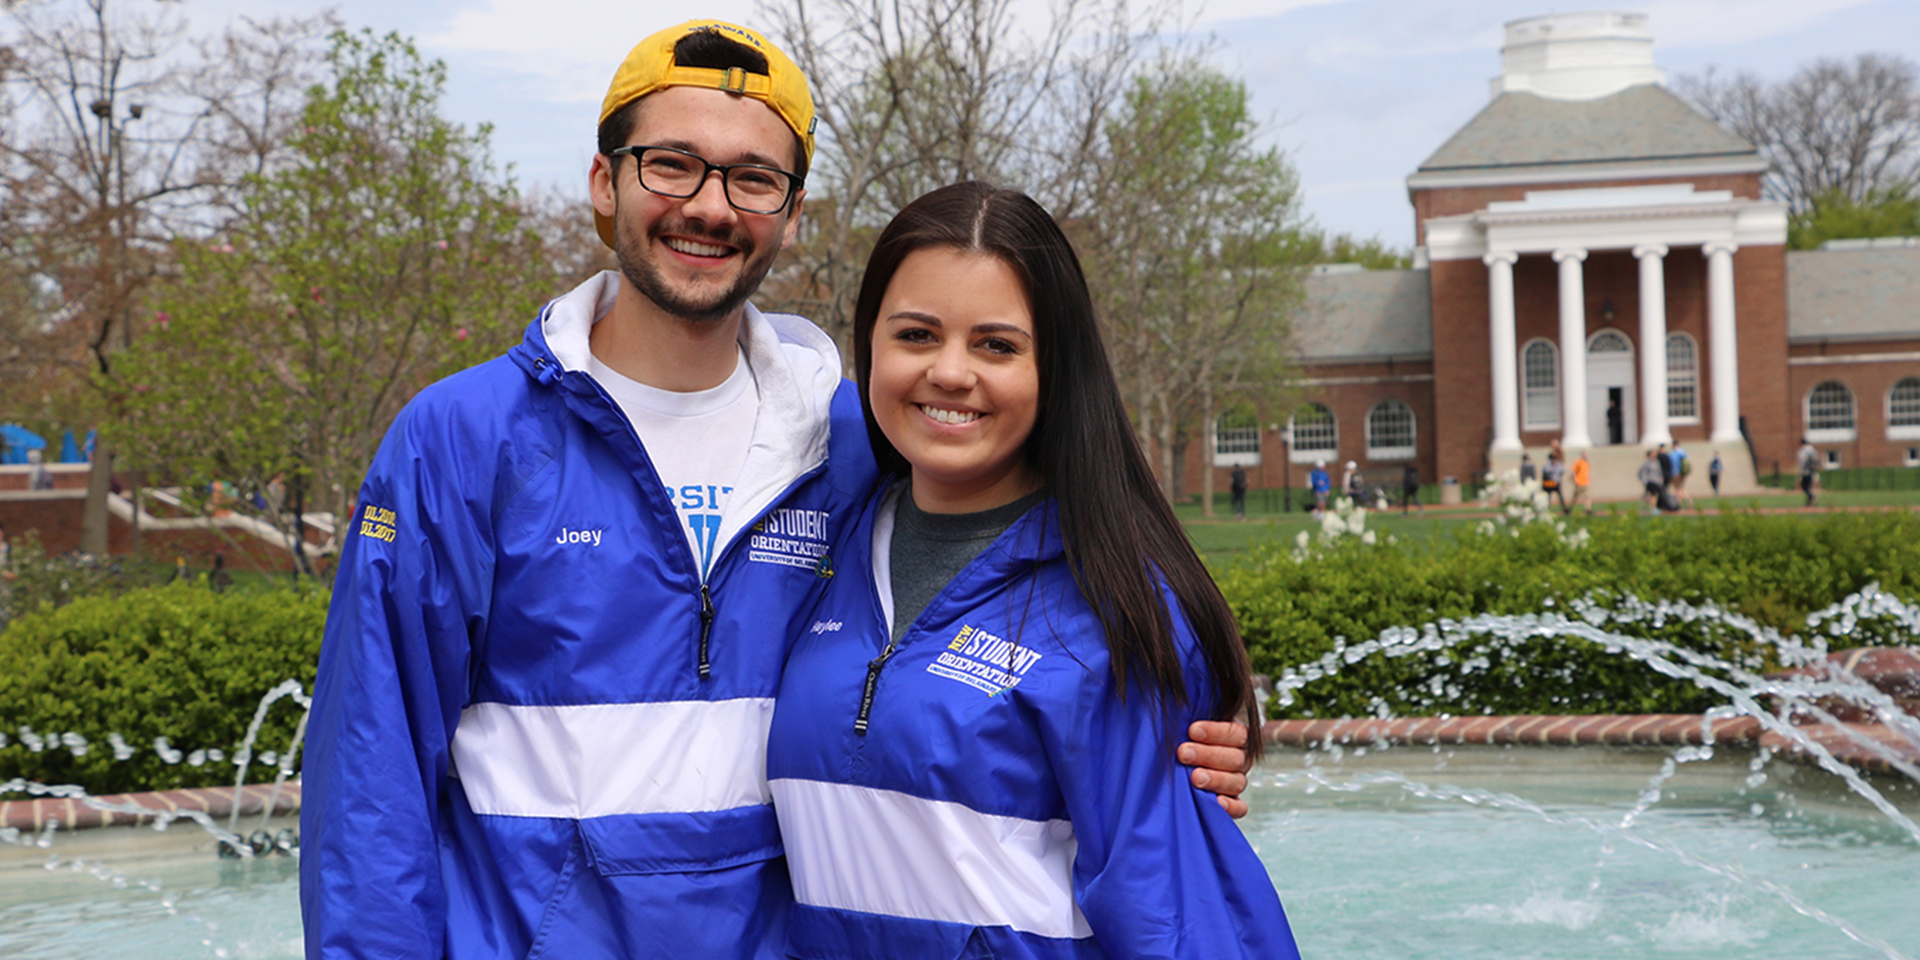 Two University of Delaware students smiling at Memorial Hall